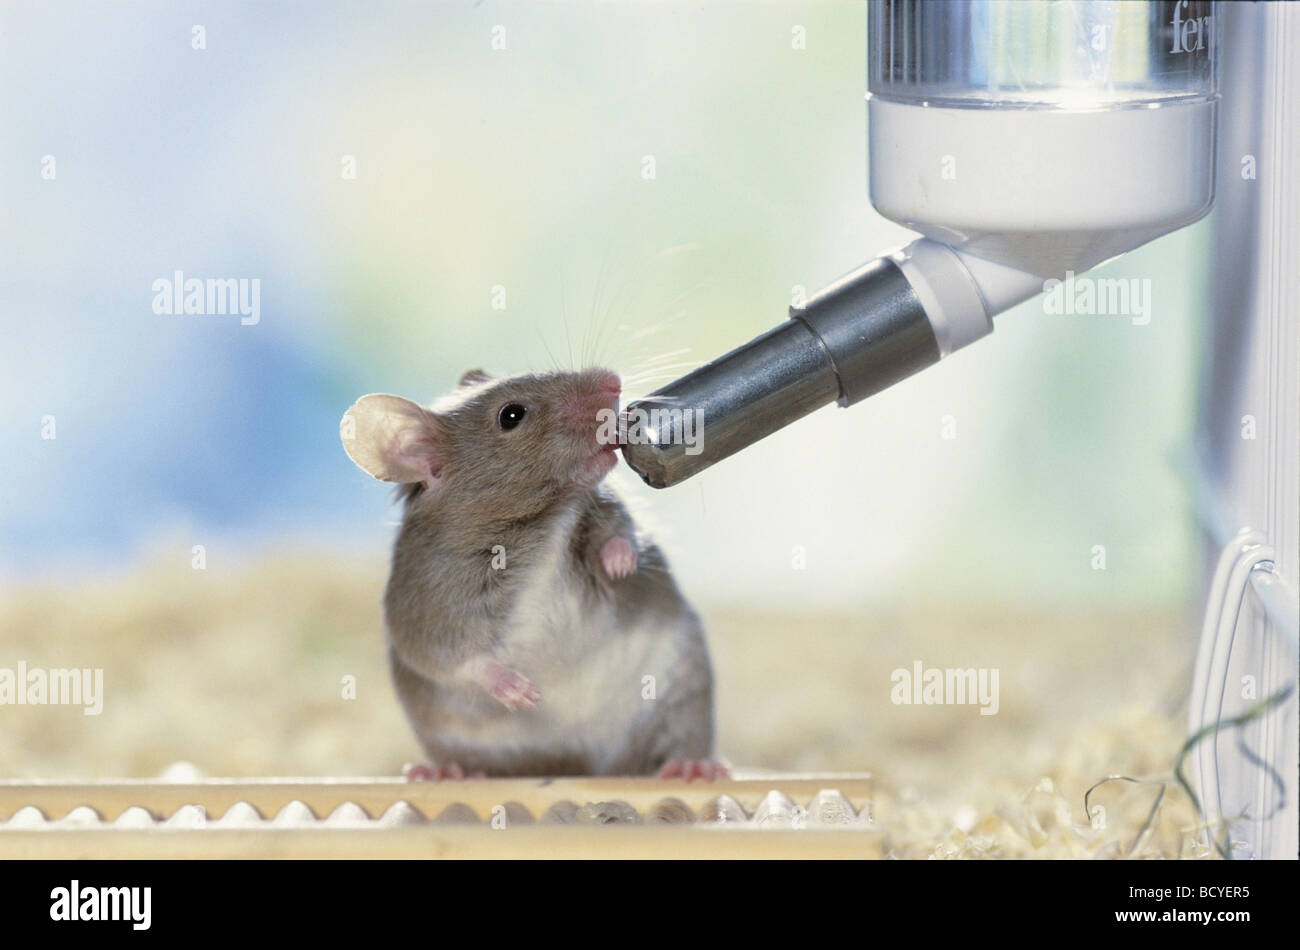 Fancy Mouse Stock Photo